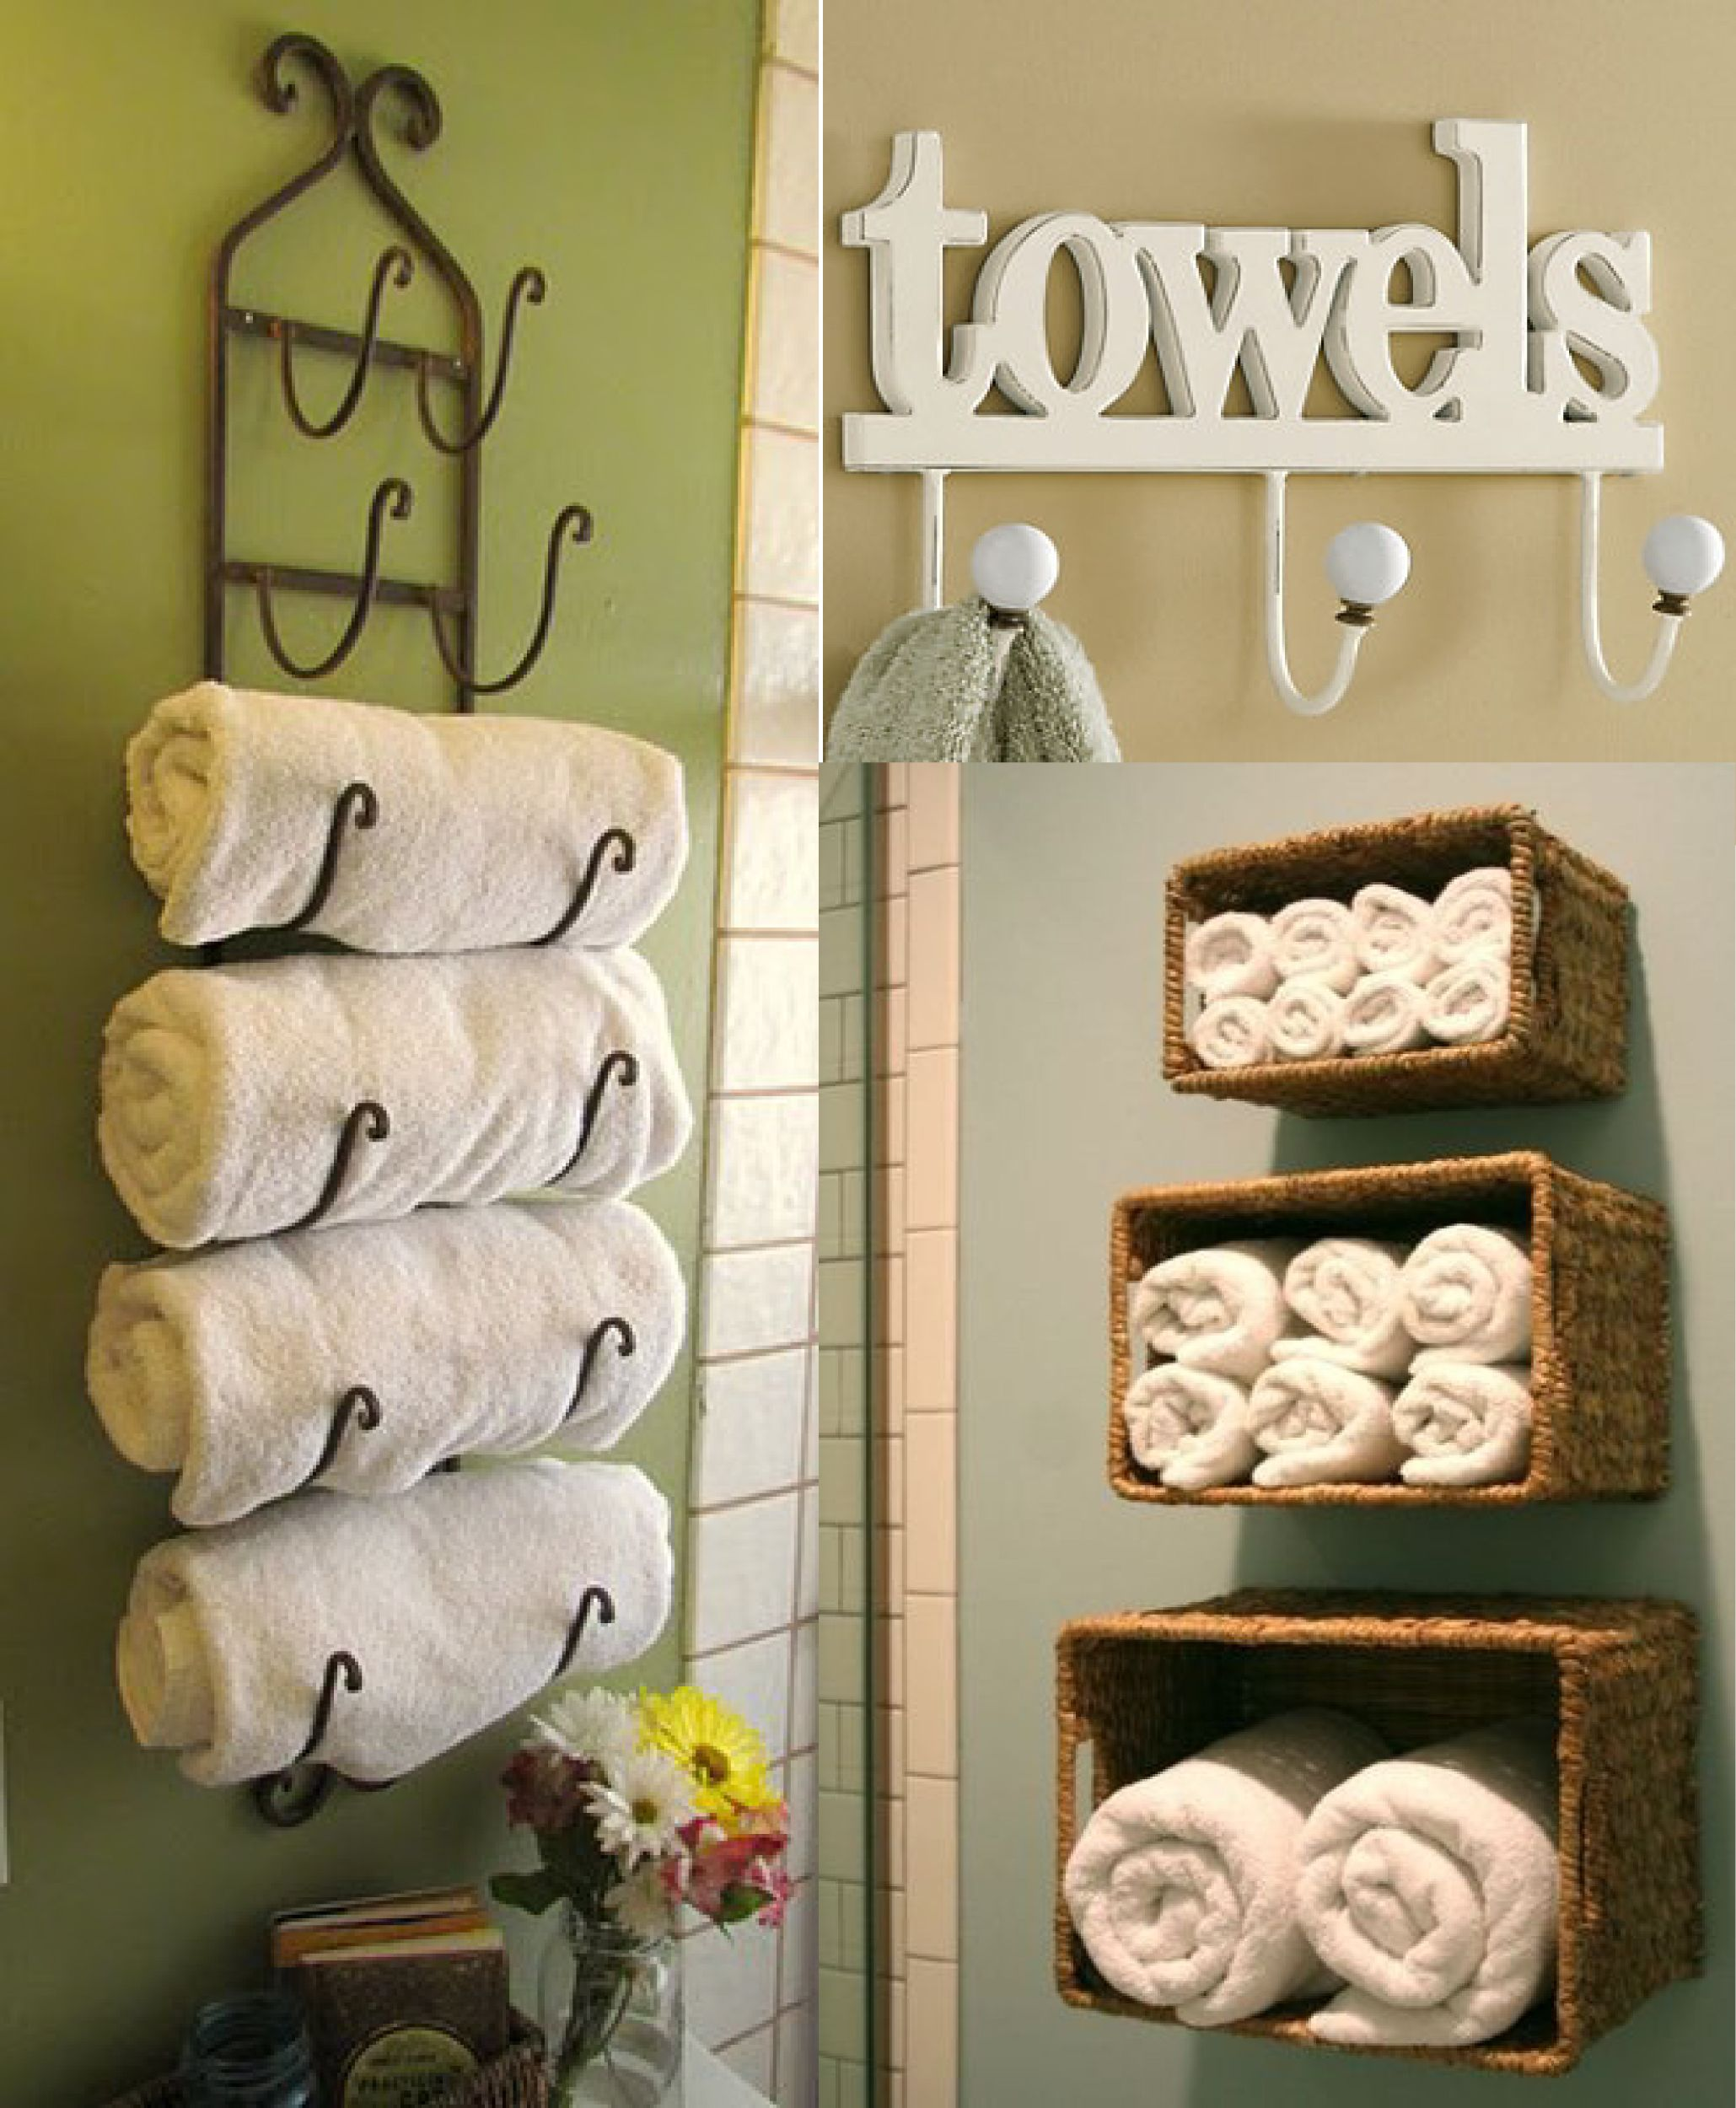 Towel Storage And Antique Custom Towel Bar Inspiring Bathroom Accesories Design Ideas Fancy Towel Storage In Styles And Designs For Elegant Bathroom